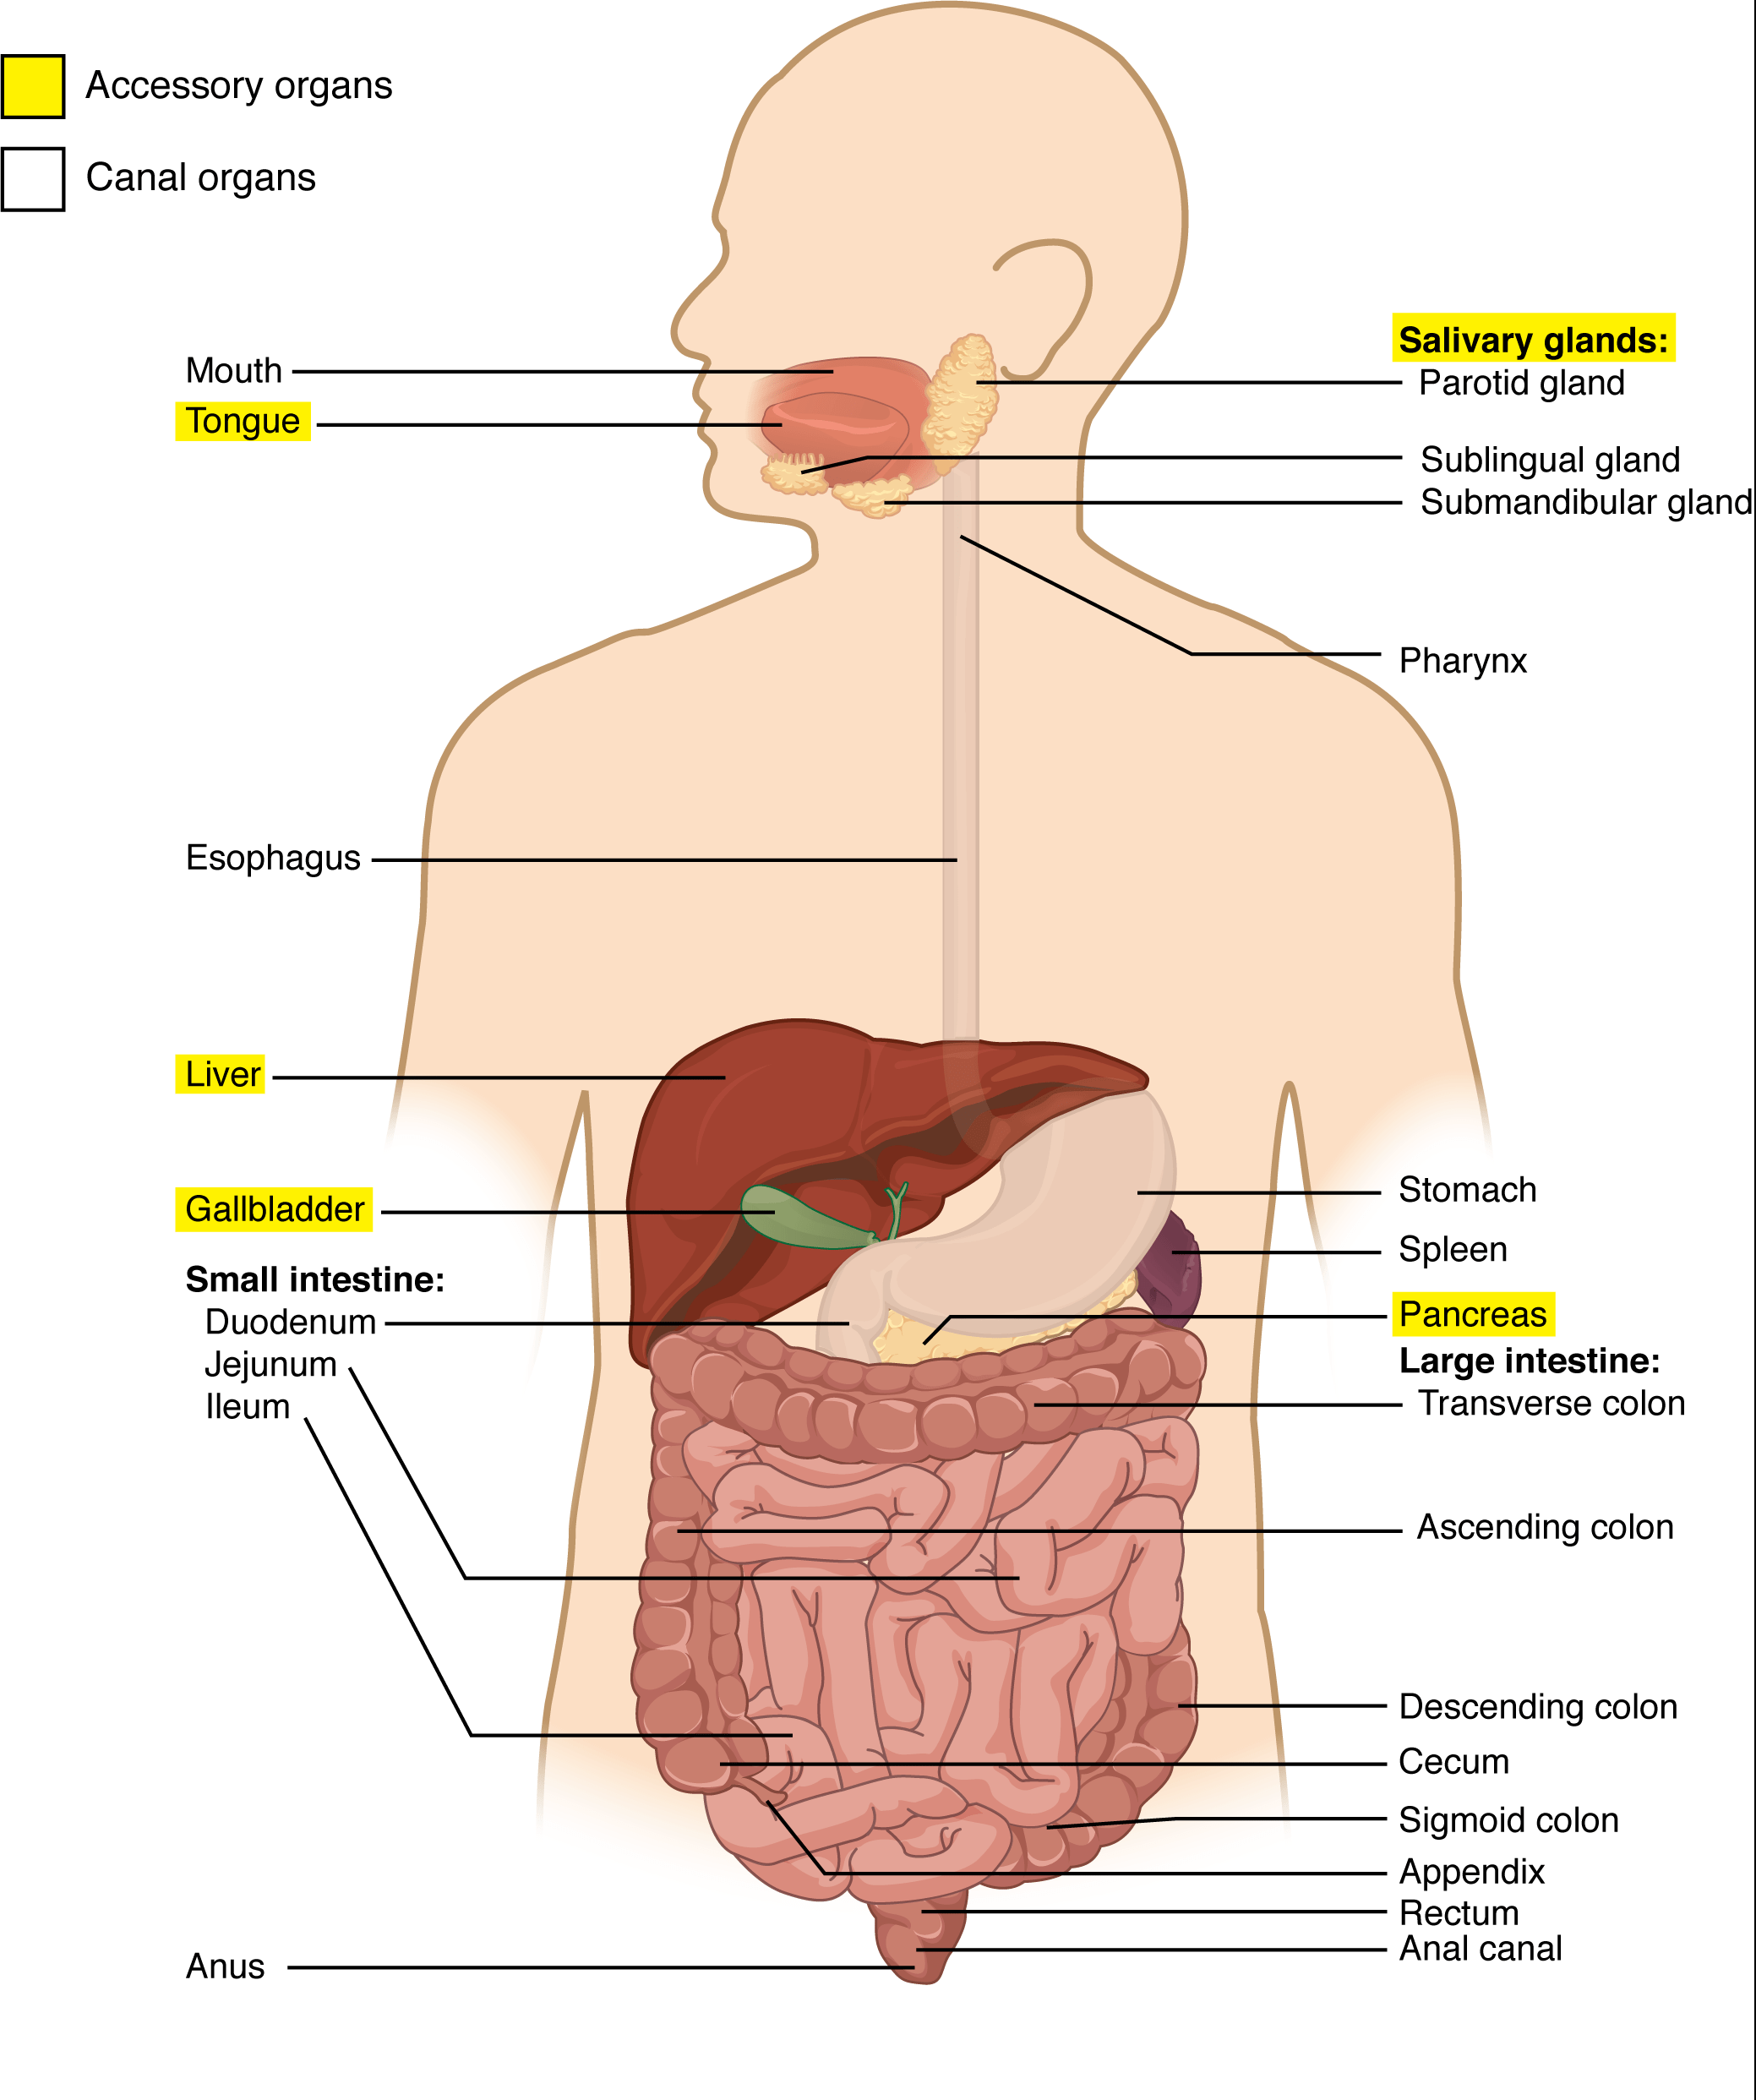 Body Systems Organs And Functions Quizlet